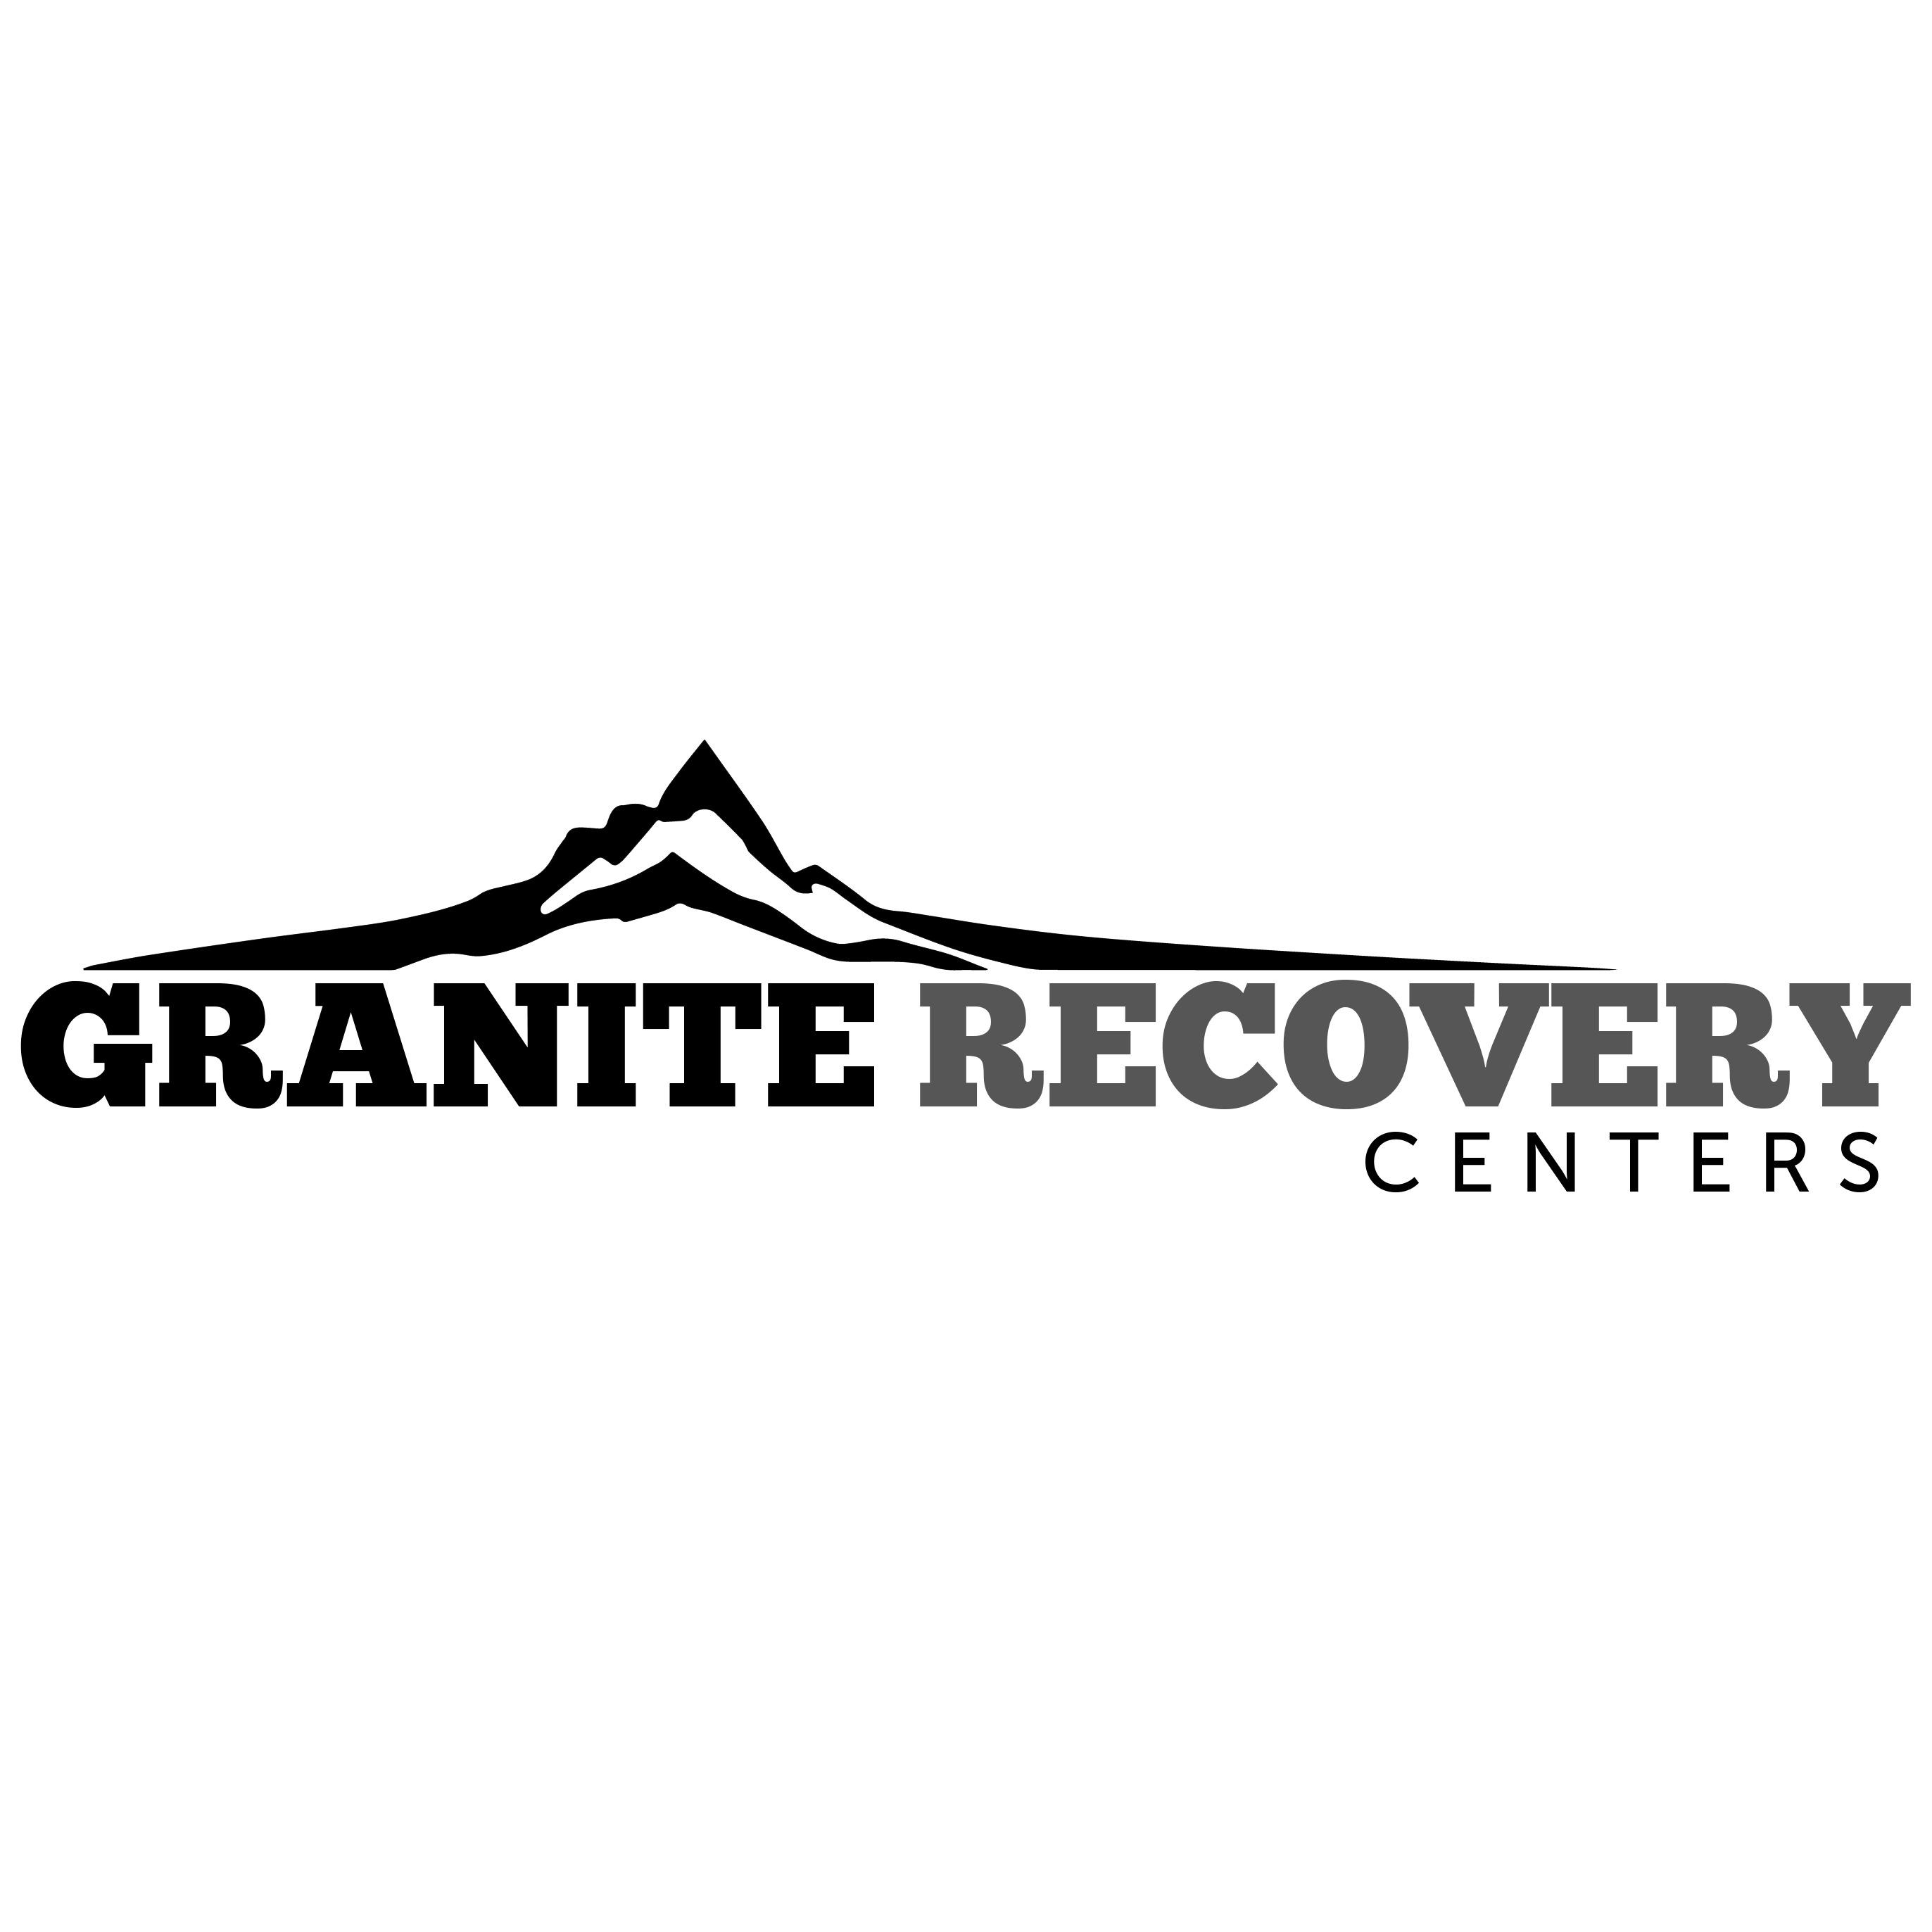 Granite Recovery Centers